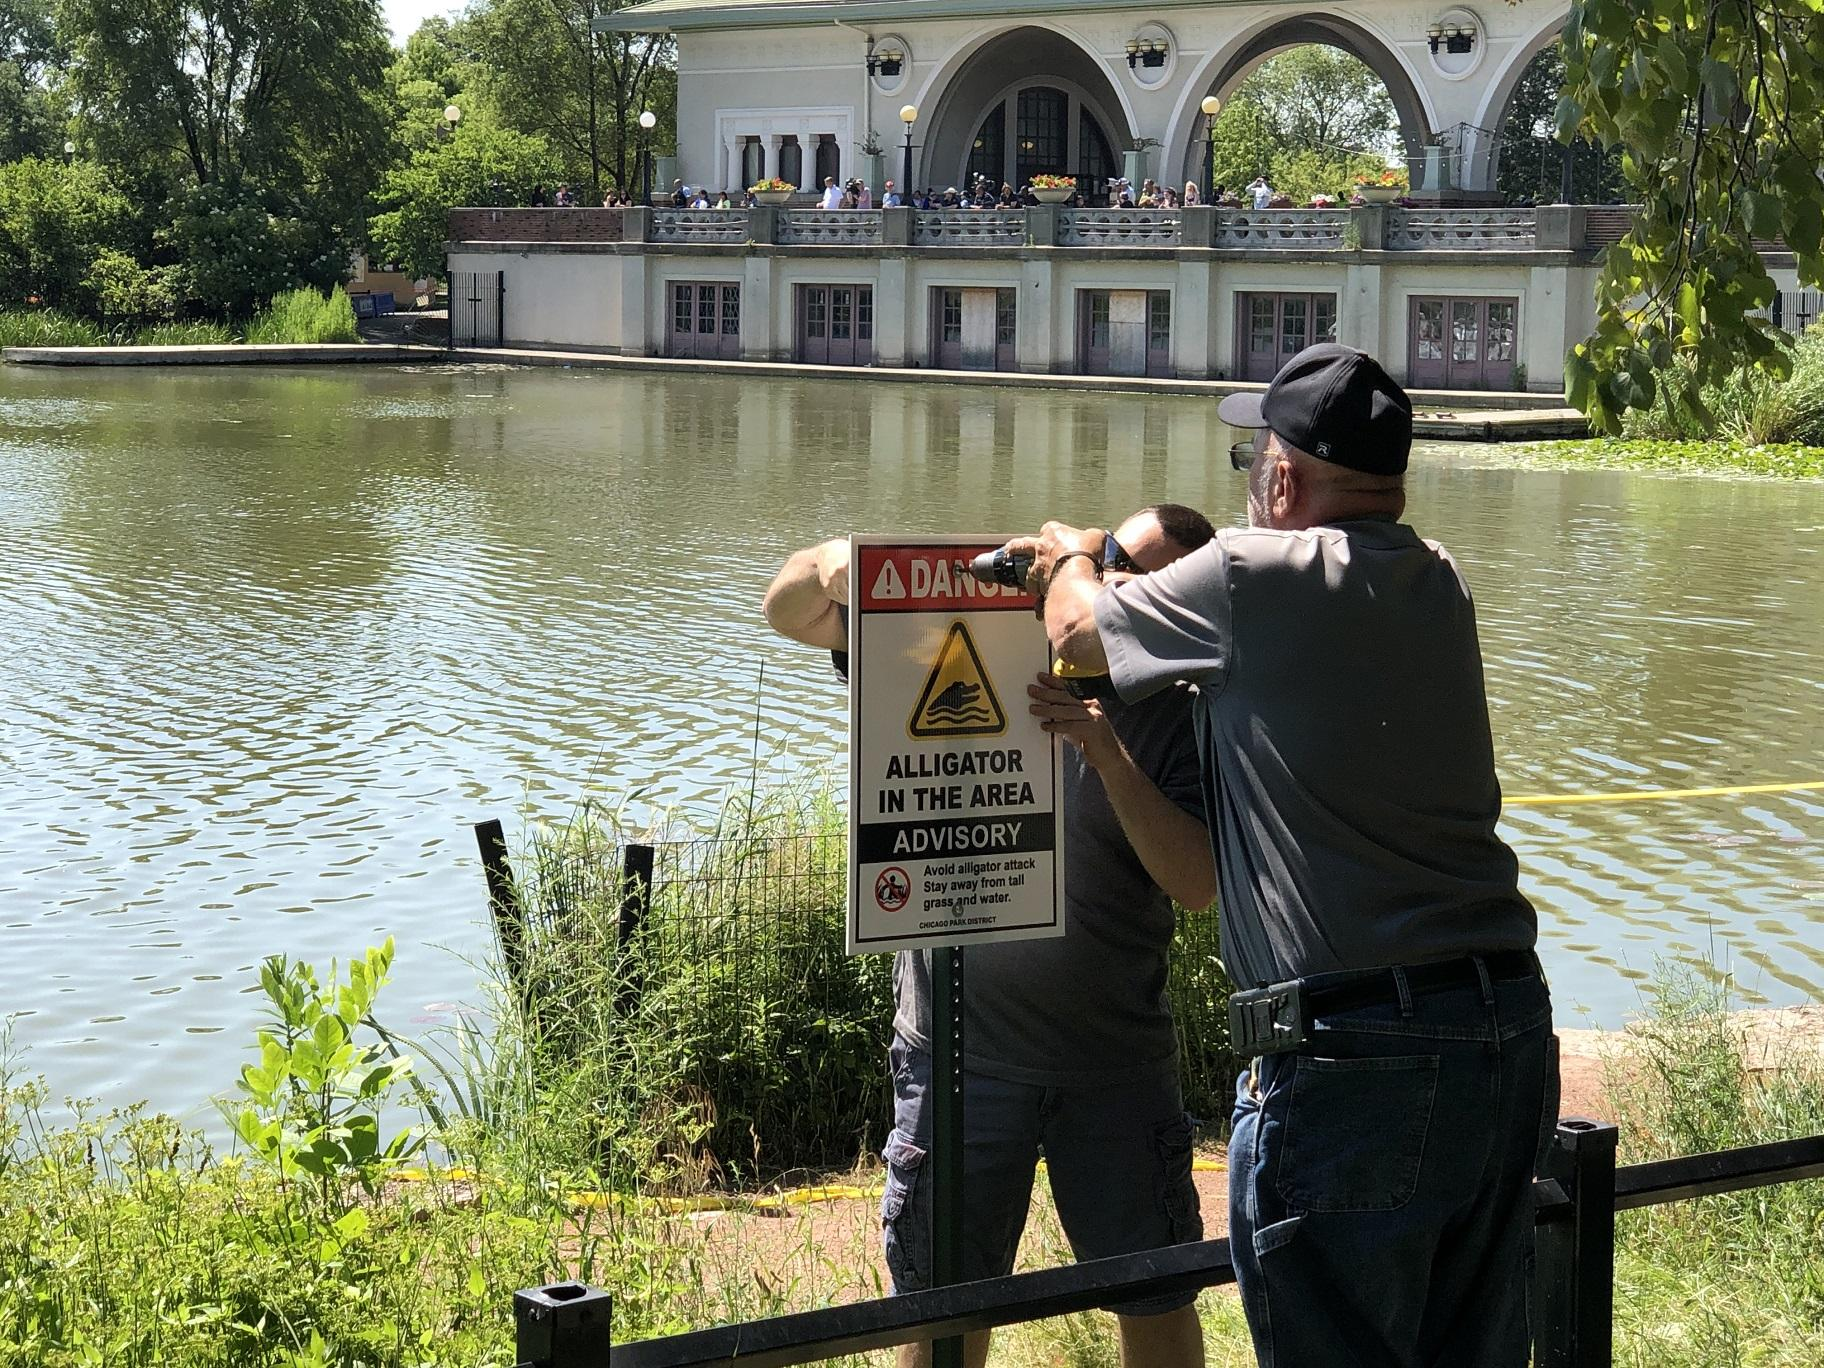 Chicago Park District officials adjust a sign warning visitors about the alligator living in the Humboldt Park Lagoon. (Alex Ruppenthal / WTTW News)